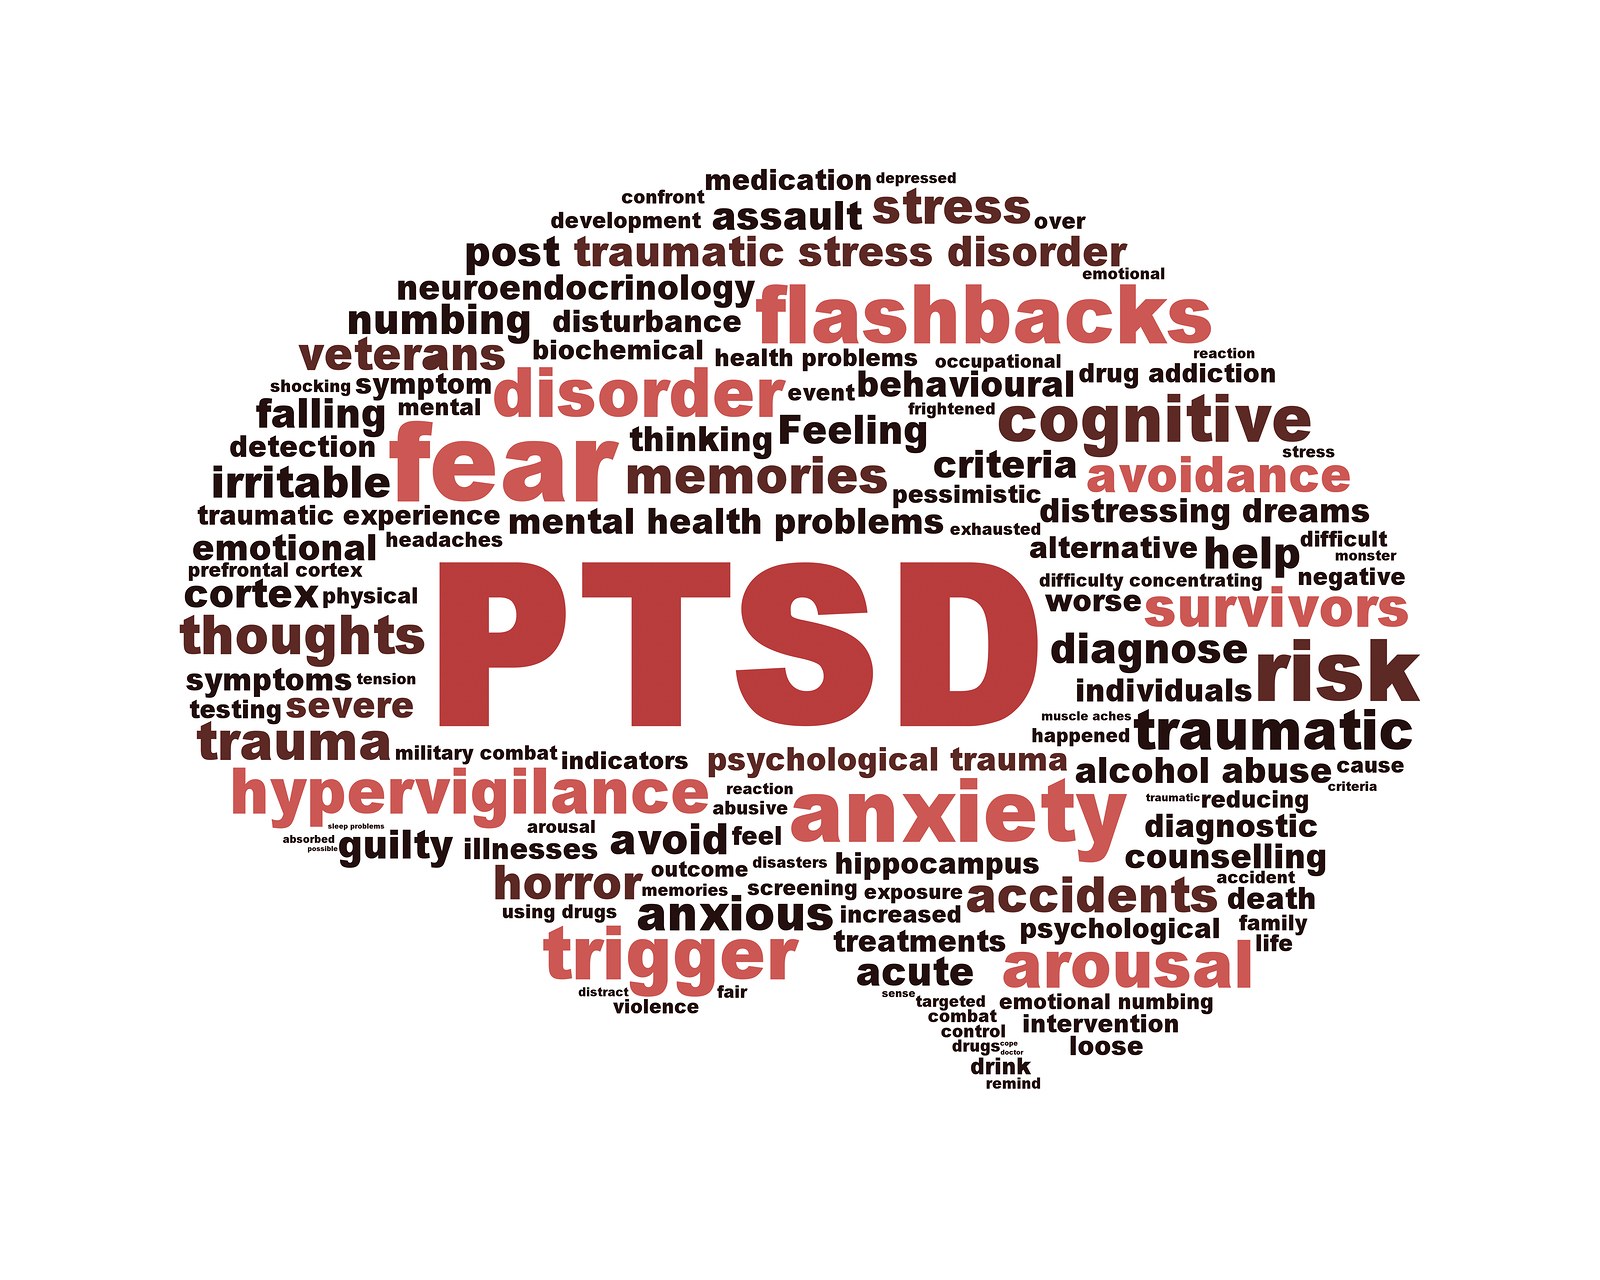 understanding ptsd and methods of treatment term paper sample - 1609